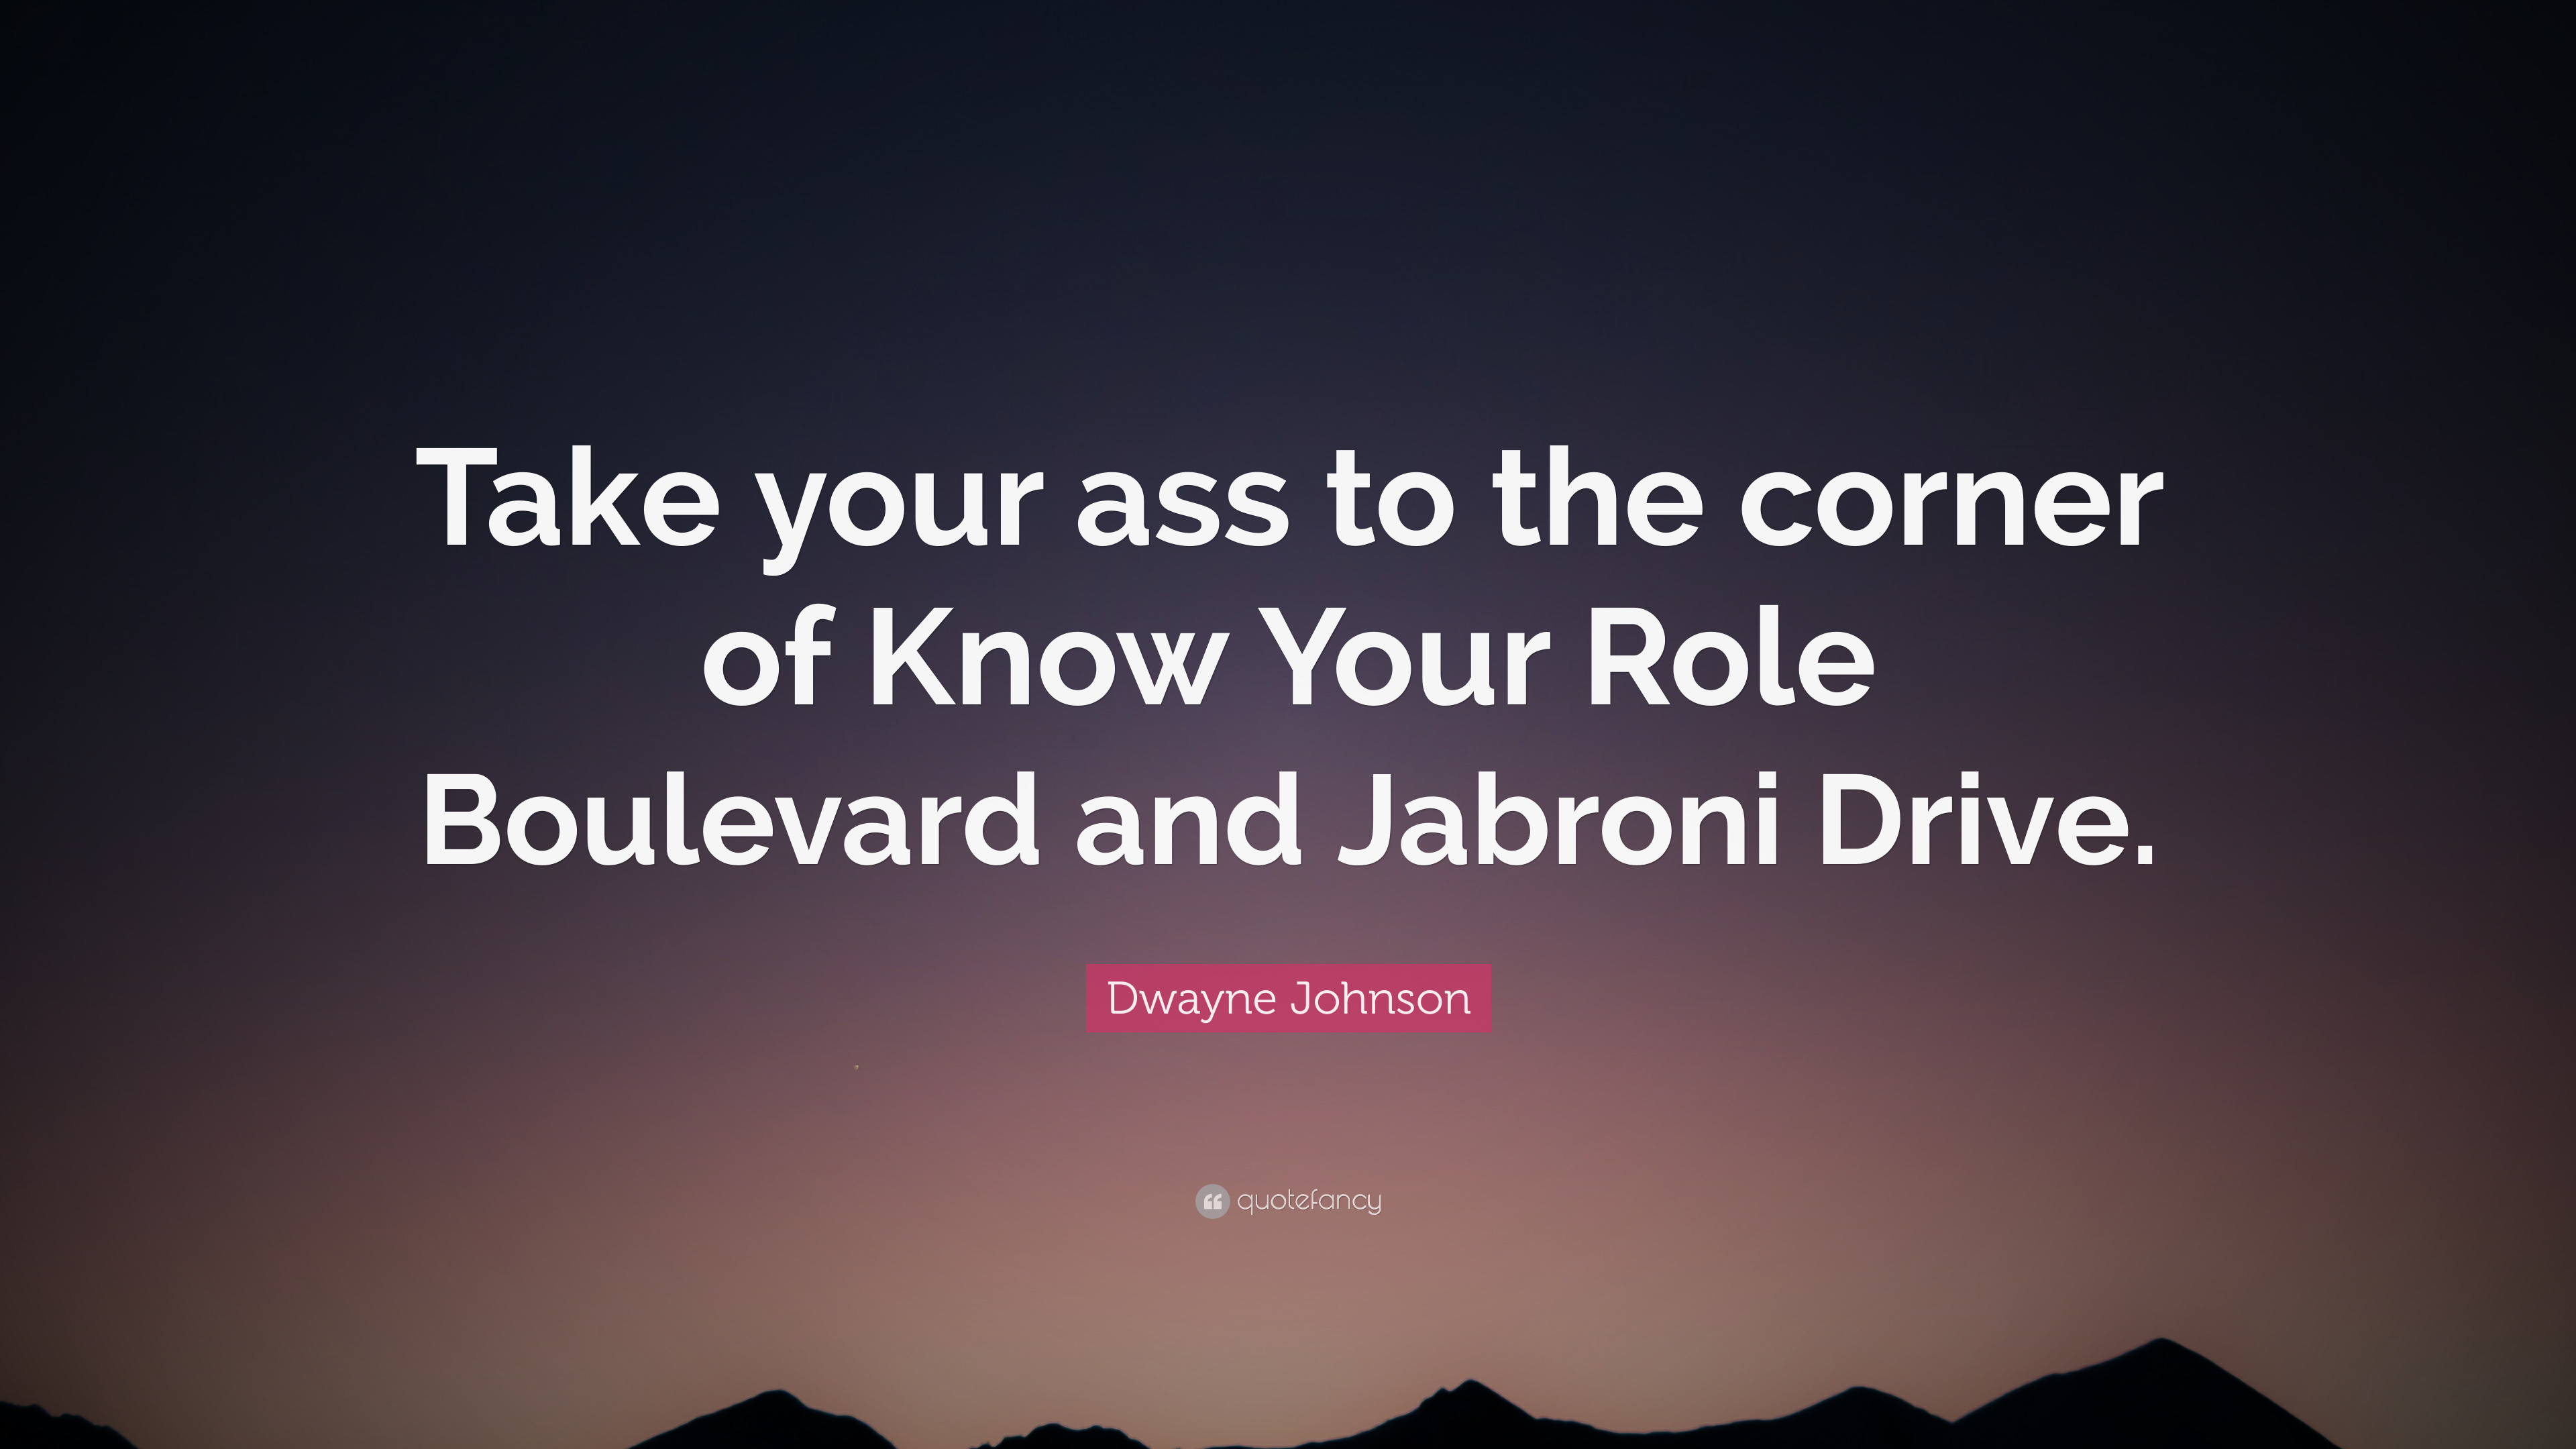 Dwayne Johnson Quote Take Your Ass To The Corner Of Know Your Role